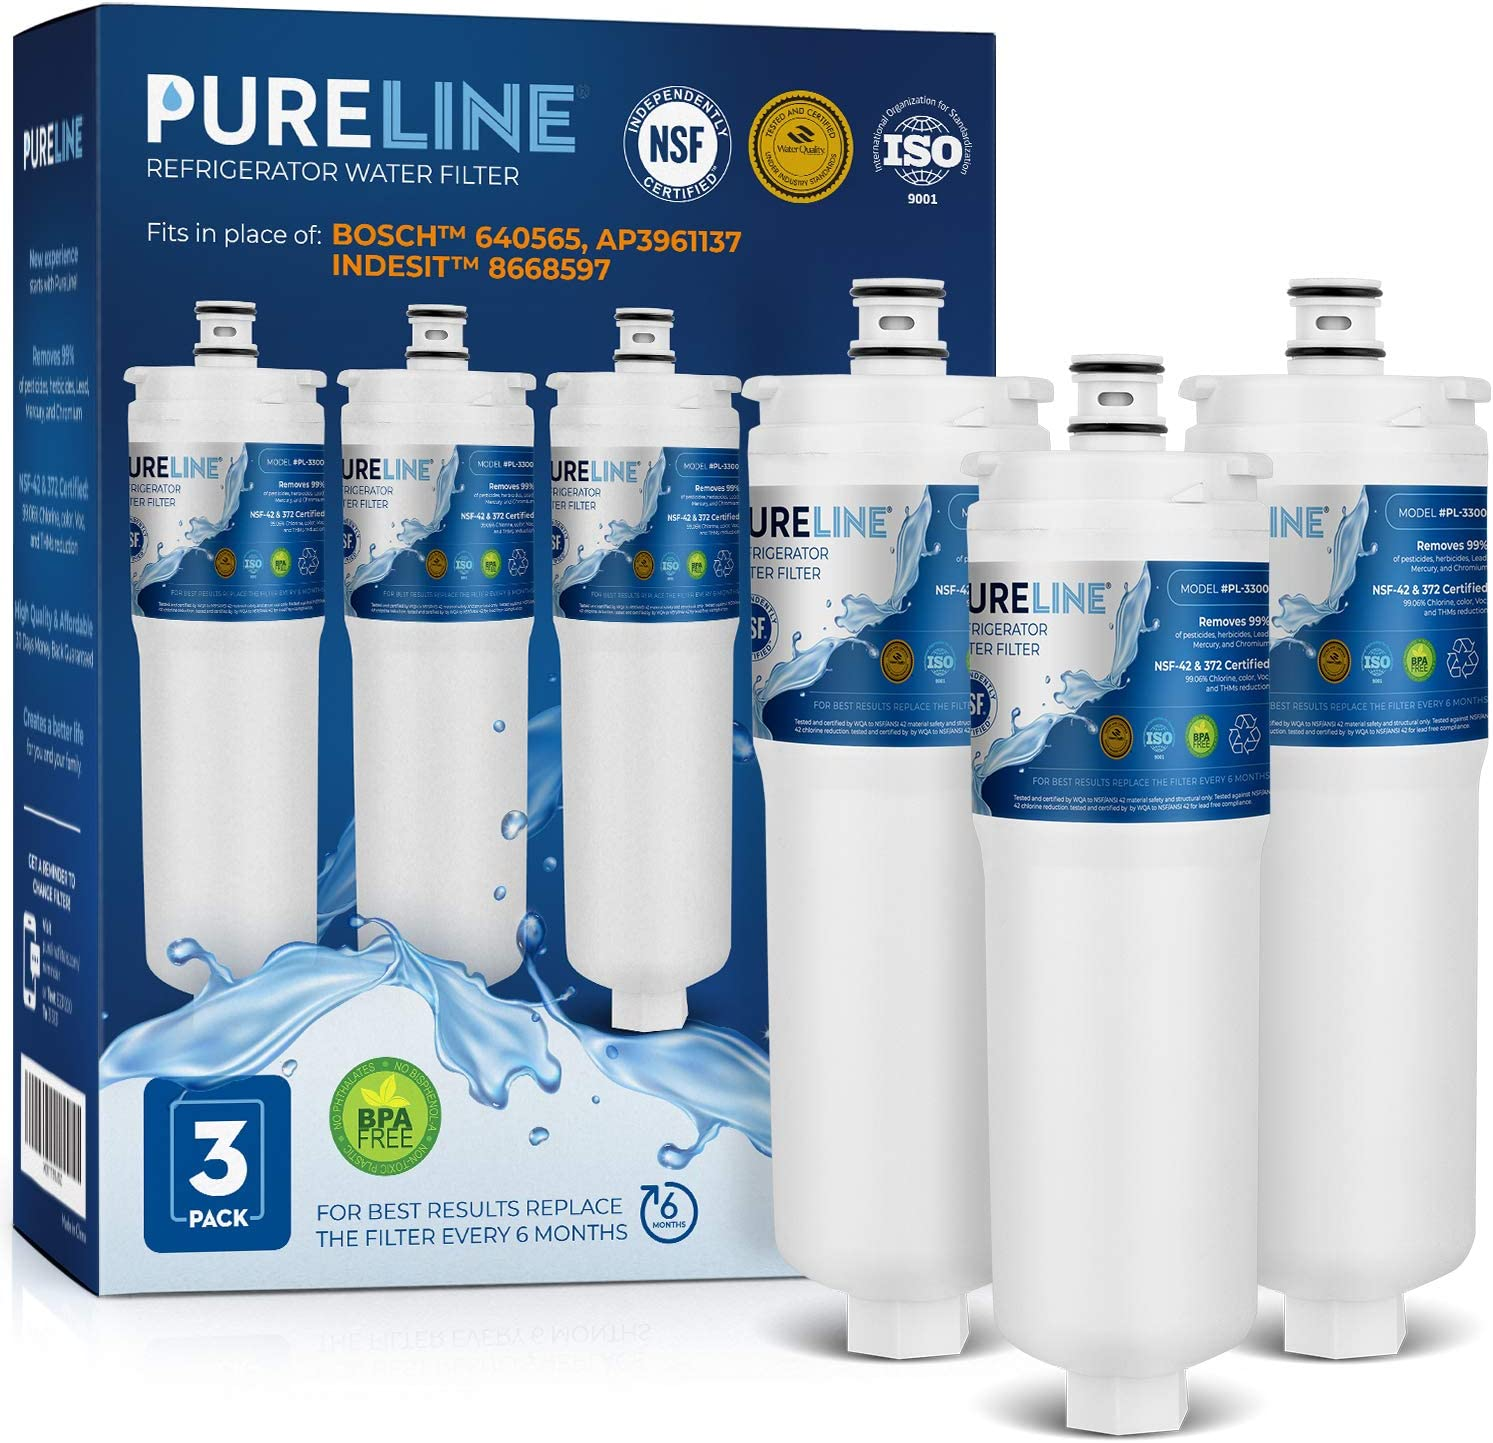 PURELINE 640565 Refrigerator Water Filter Replacement. Compatible with Bosch 640565, EVOLFLTR10, AP3961137, Whirlpool WHKF-R-PLUS. Triple Action Filtration with Advanced Carbon Block. (3 Pack)